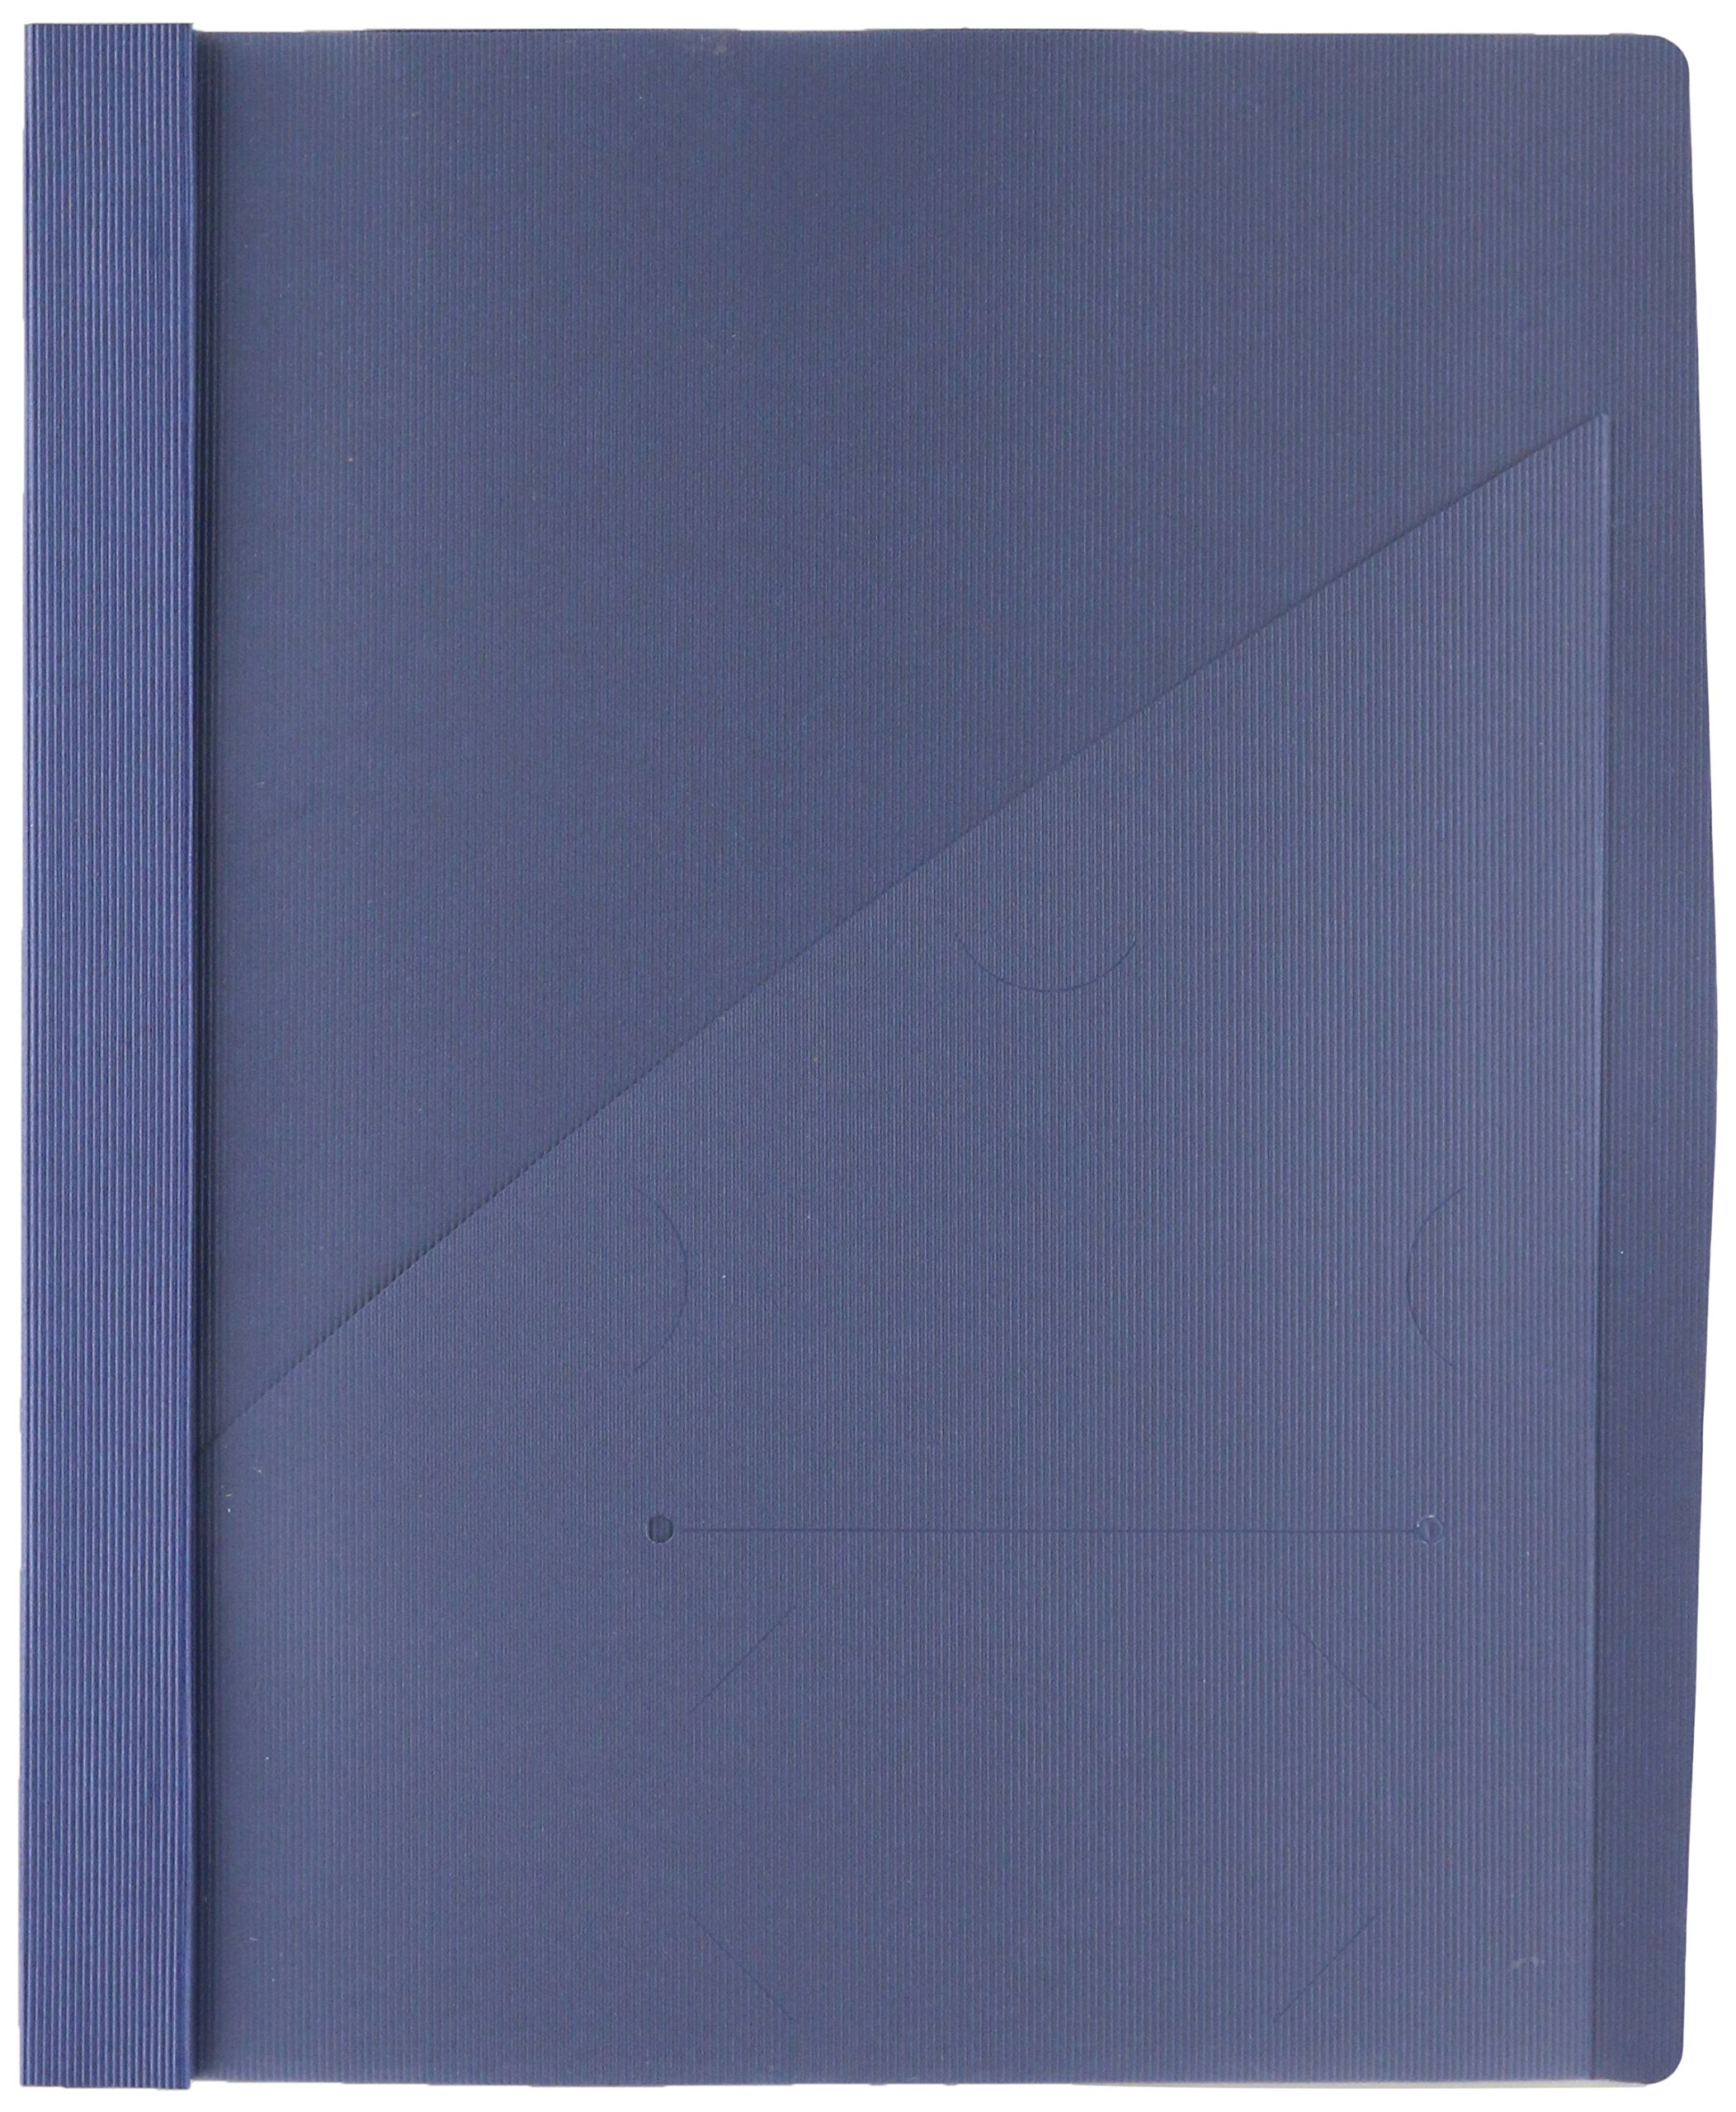 Wilson Jones Frosted Front Report Covers with Pocket, 3-Hole Punched, Dark Blue, 5 Covers per Pack (W71111C)